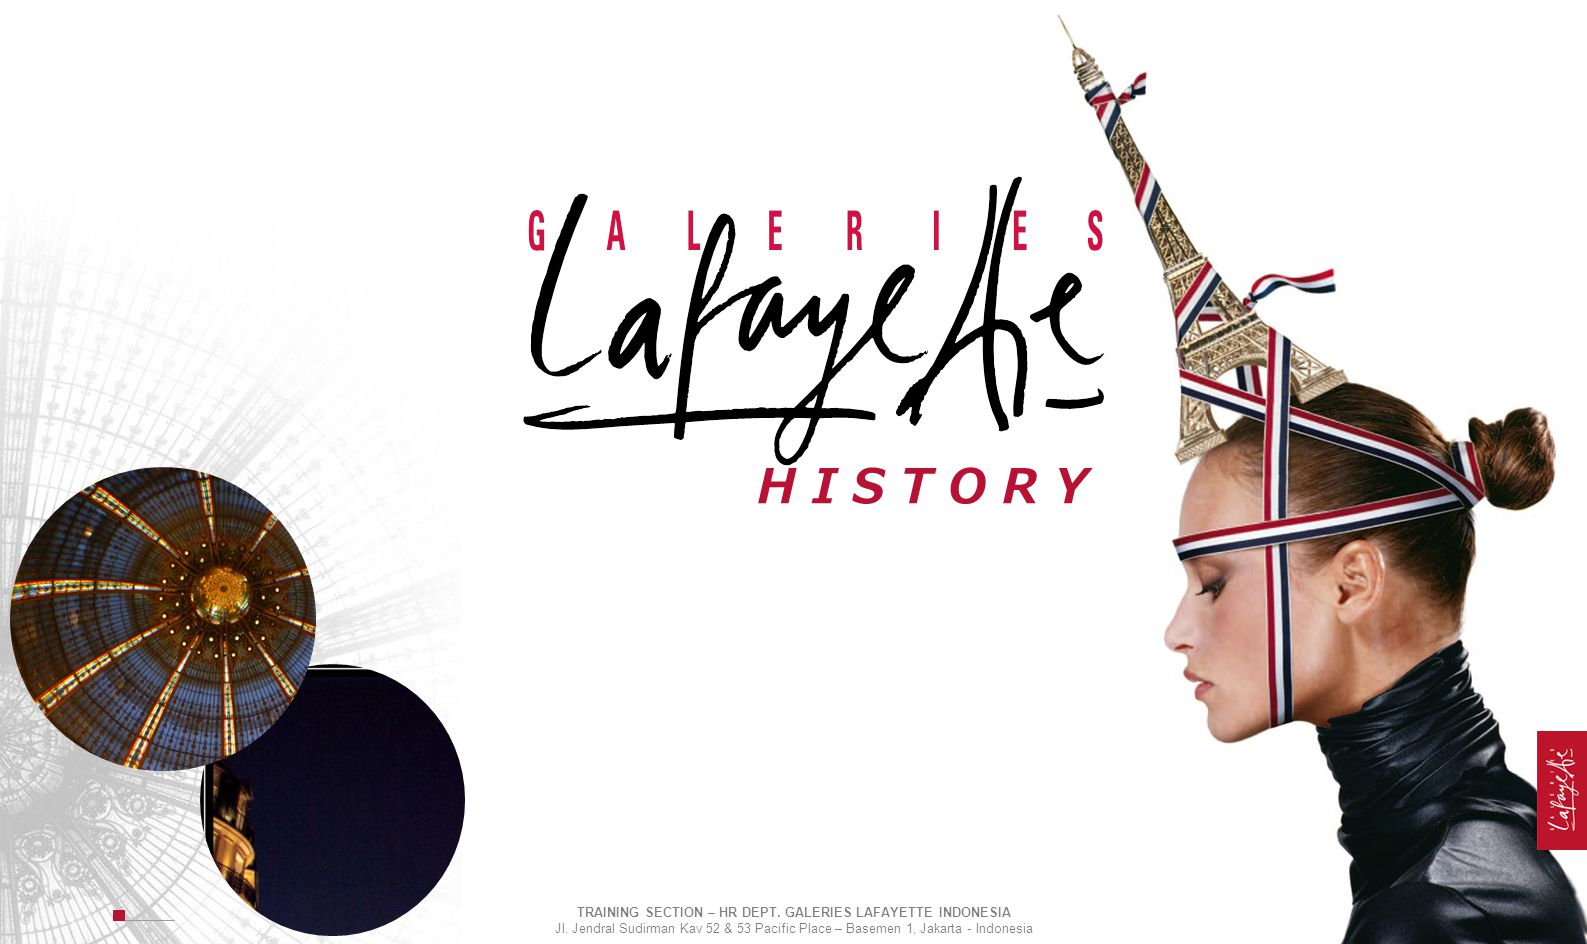 GALERIES LAFAYETTE Dept Store: 64 stores DIDIER GUERIN CITINOV TRAINING SECTION – HR DEPT.